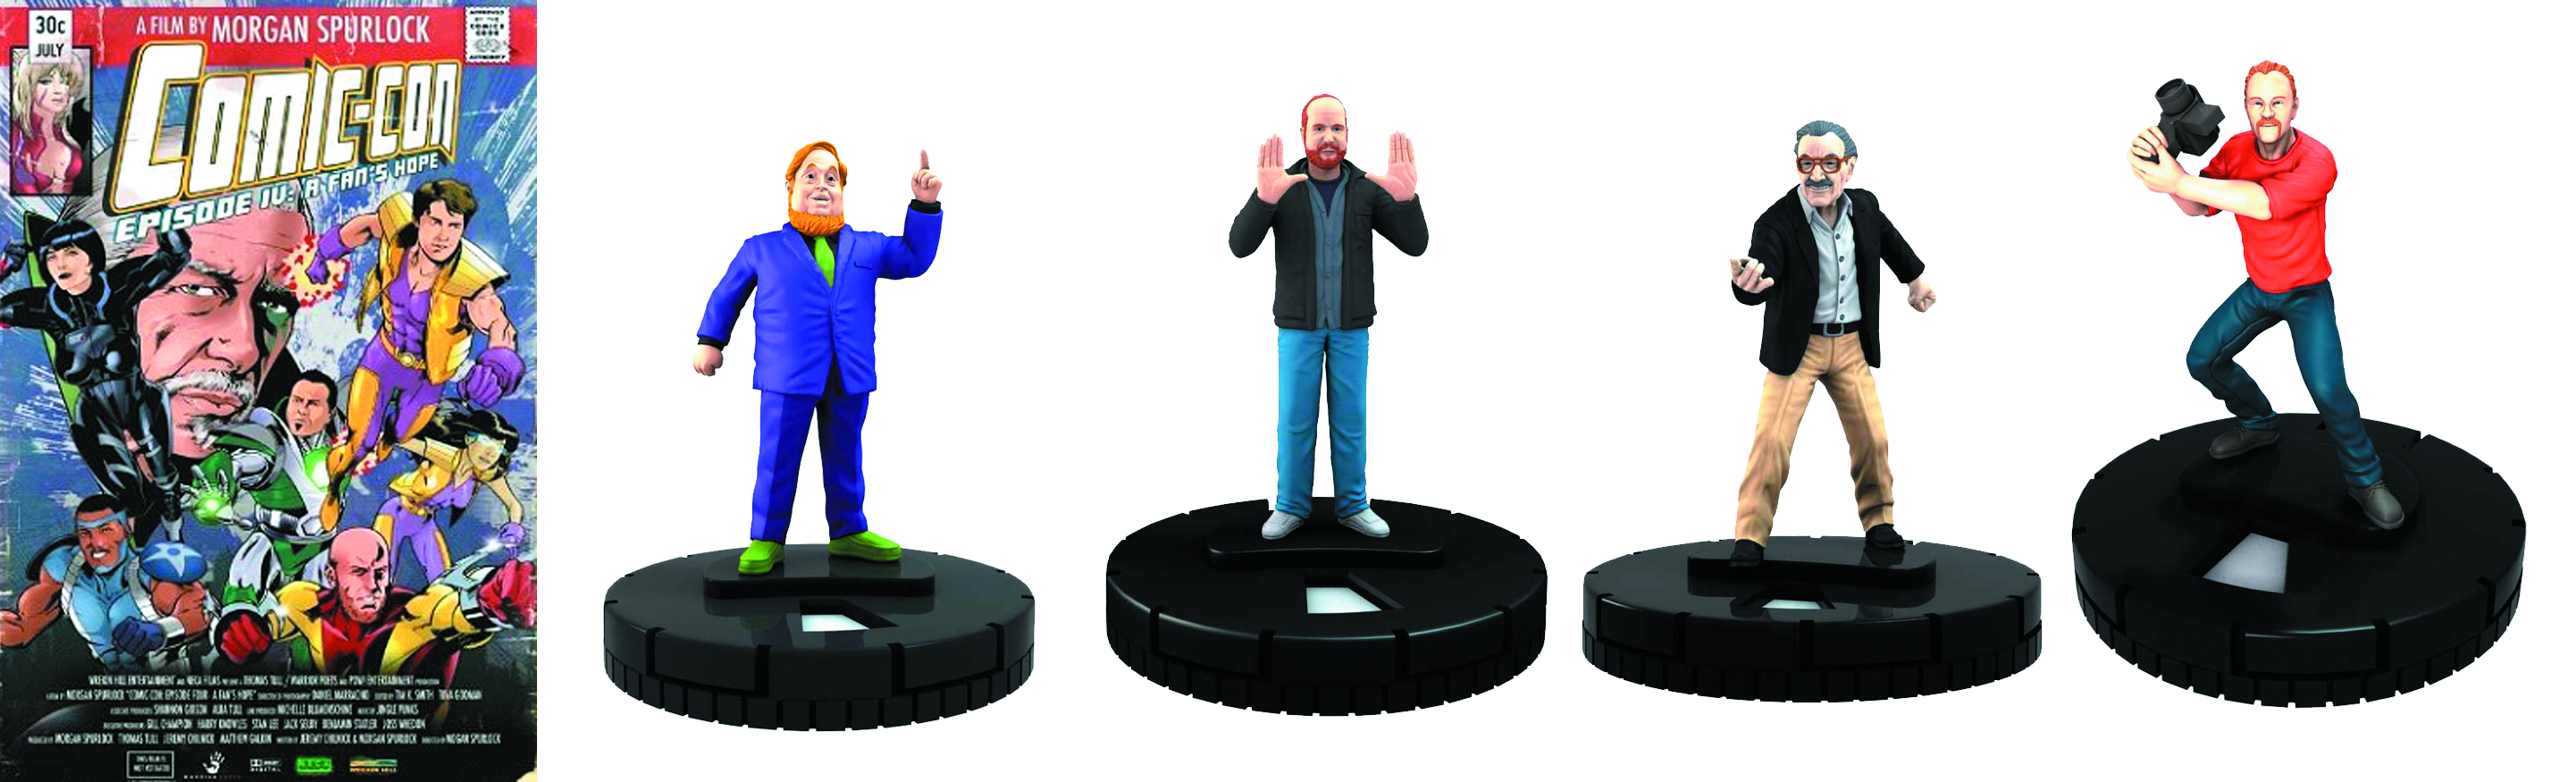 COMIC-CON MOVIE IV: FANS HOPE DVD HEROCLIX COMBO PACK